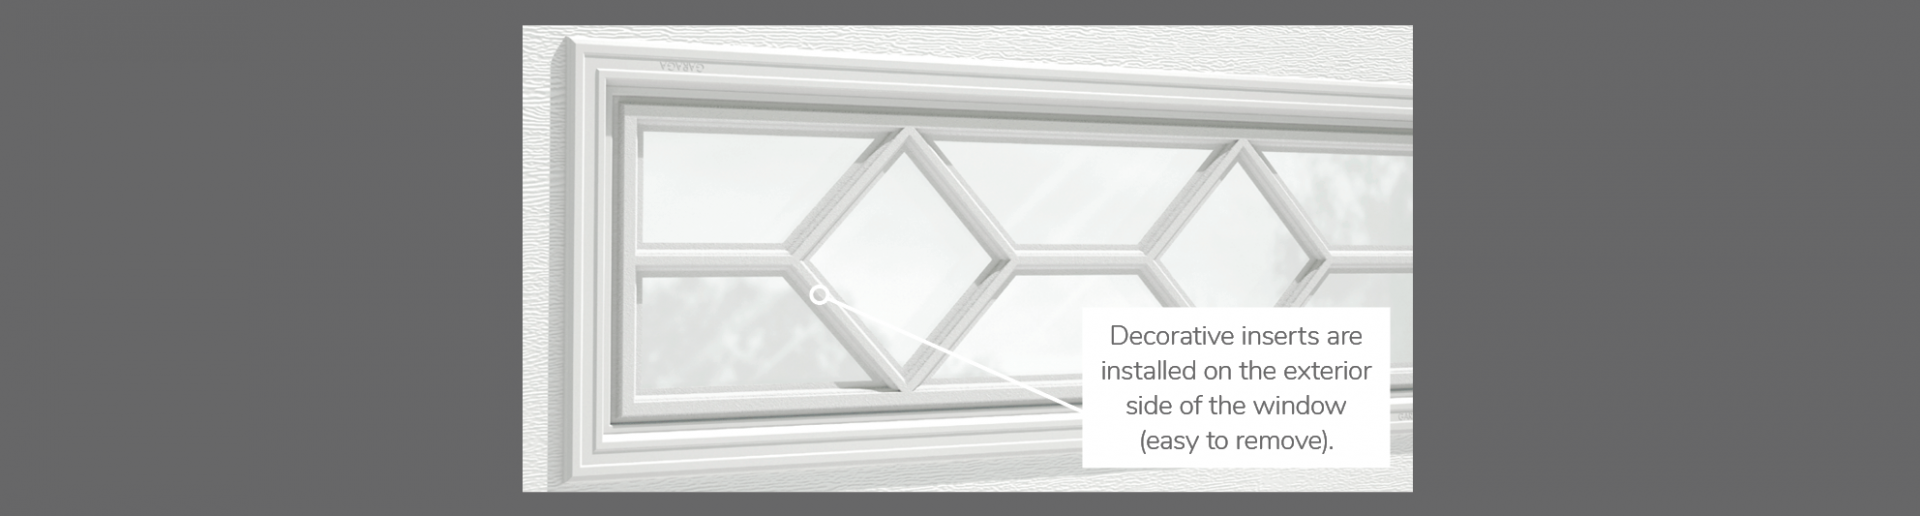 "Waterton Decorative Insert, 40"" x 13"" or 41"" x 16"", available for door 3 layers - Polystyrene, 2 layers - Polystyrene and Non-insulated"